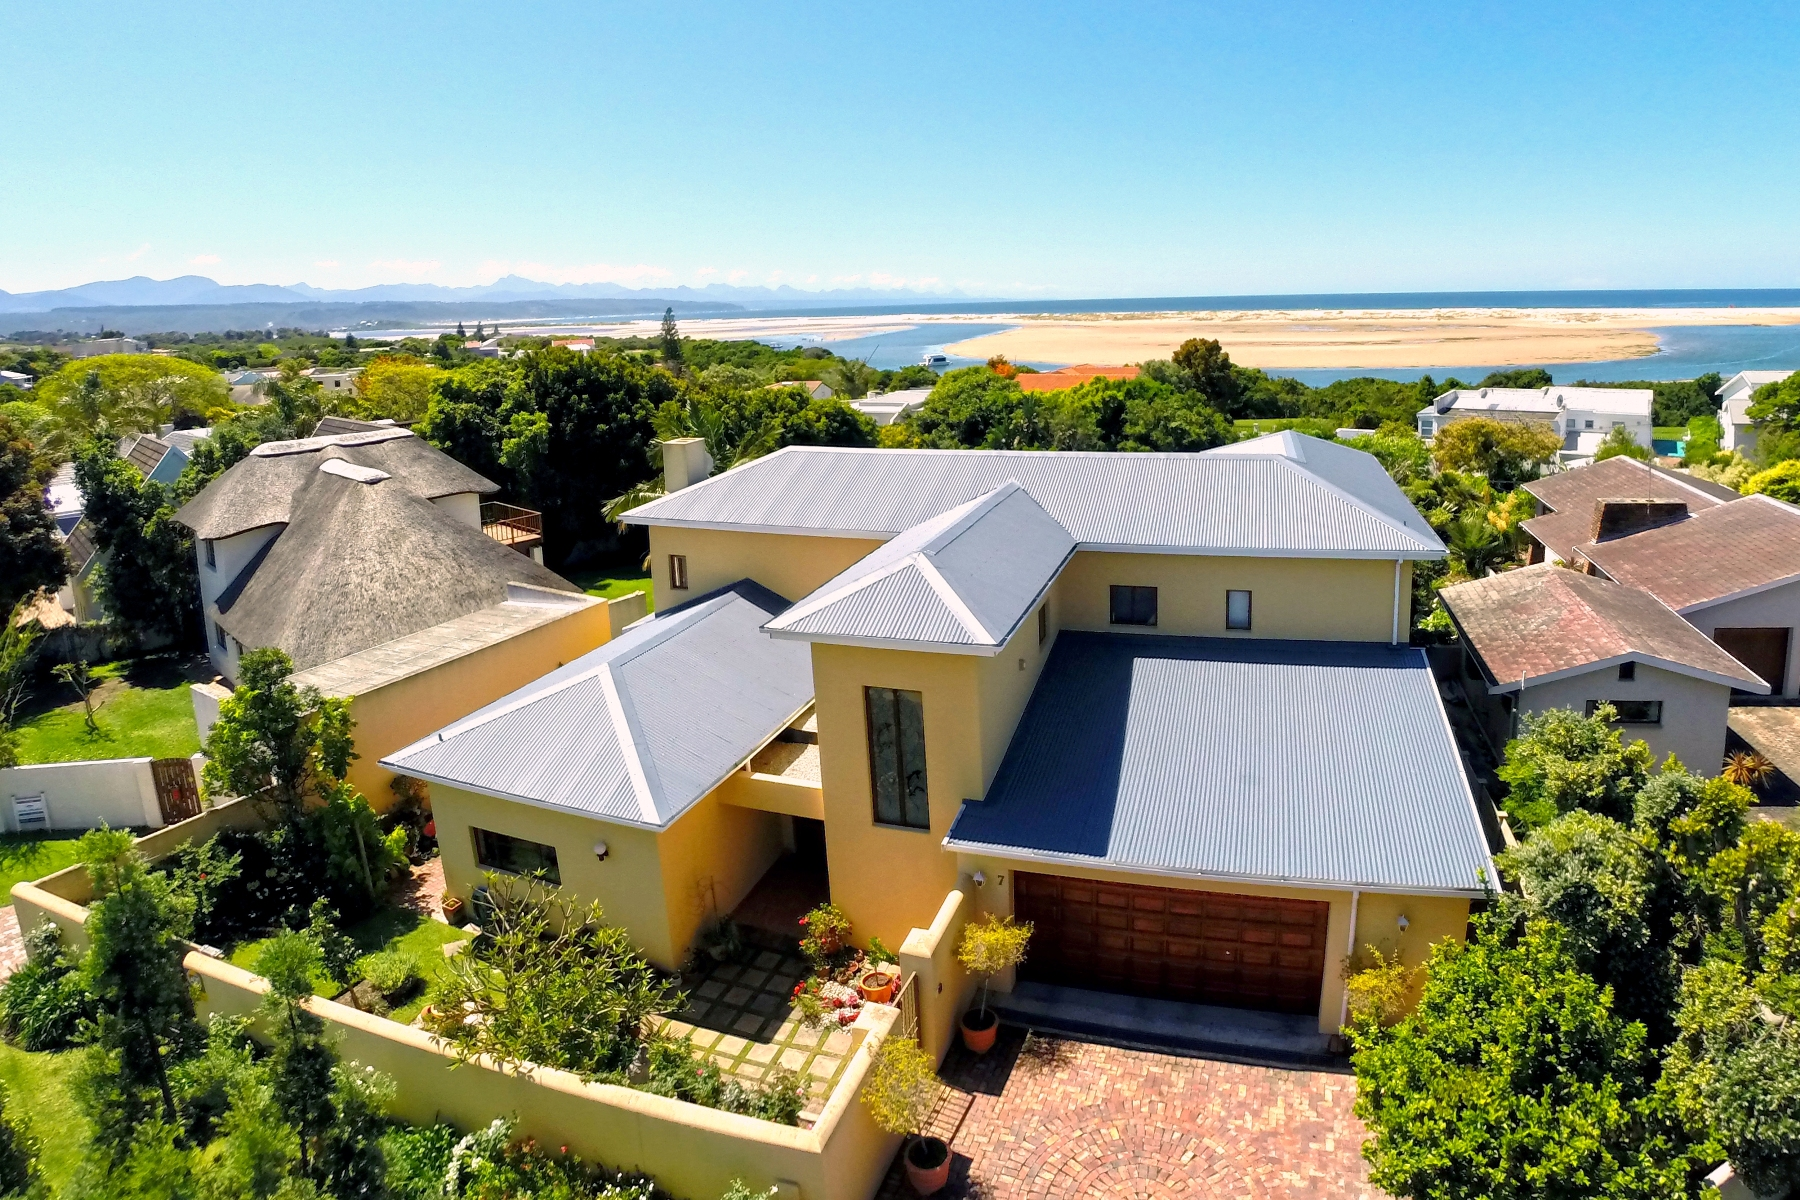 Maison unifamiliale pour l Vente à Perfect Family Home Plettenberg Bay, Cap-Occidental, 6600 Afrique Du Sud